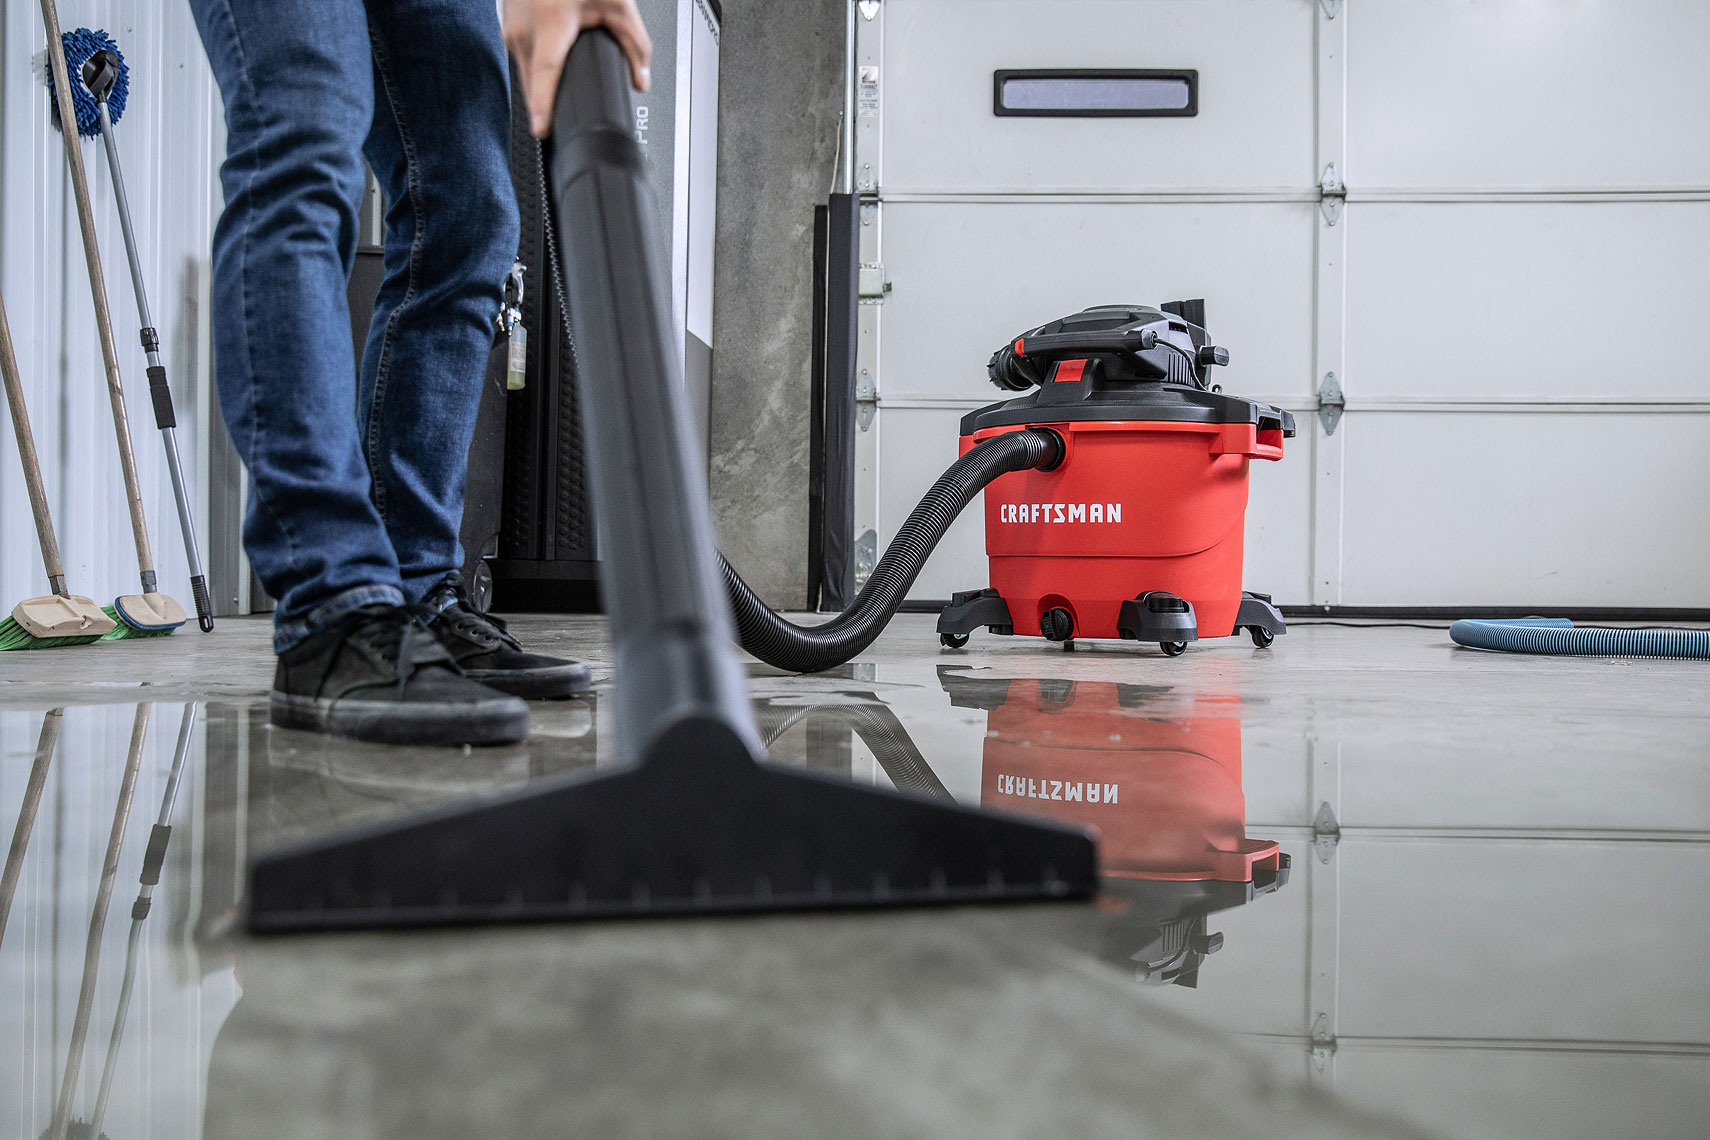 Craftsman Tools 16 Gallon Wet/Dry Vacuum | Vacuuming water from garage floor. | John Fedele Product Photography